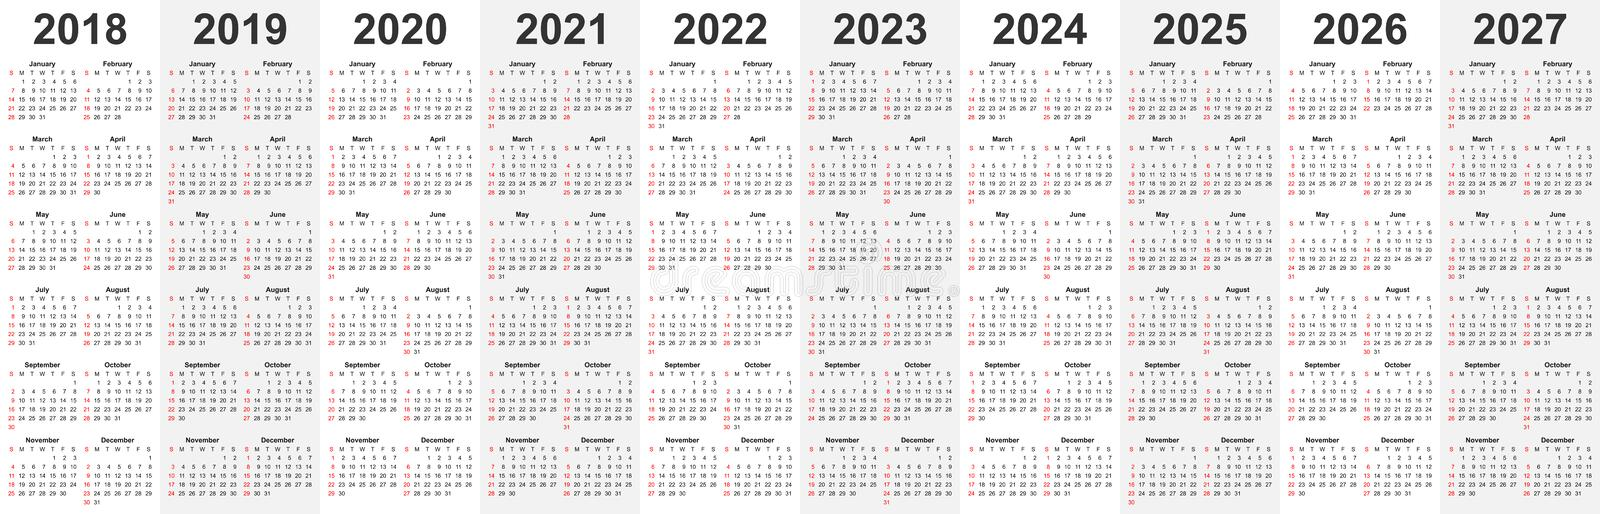 Calendar Template Set For 2018, 2019, 2020, 2021, 2022, 2023, 2024, 2025, 2026, And 2027 Years In One Vector File. Stock Vector - Illustration of ...